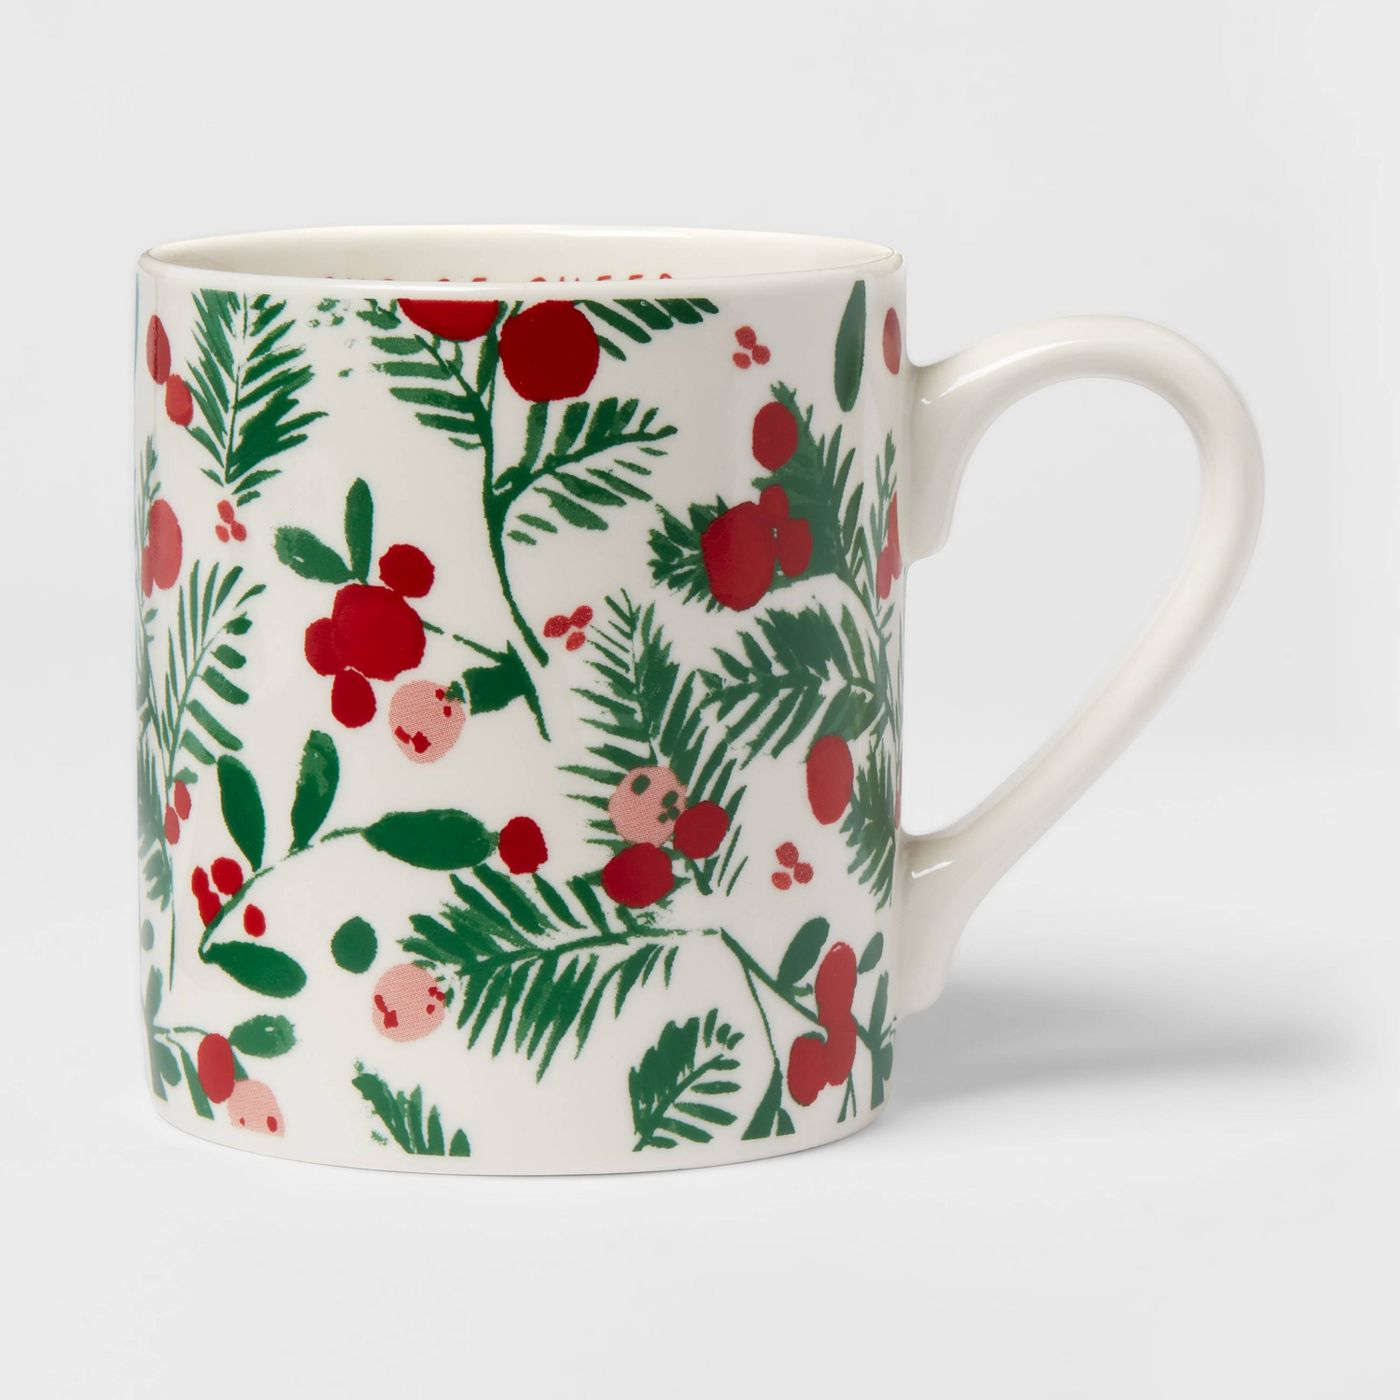 16oz Stoneware Cup Of Cheer Christmas Mug White - Threshold™ - image 1 of 6